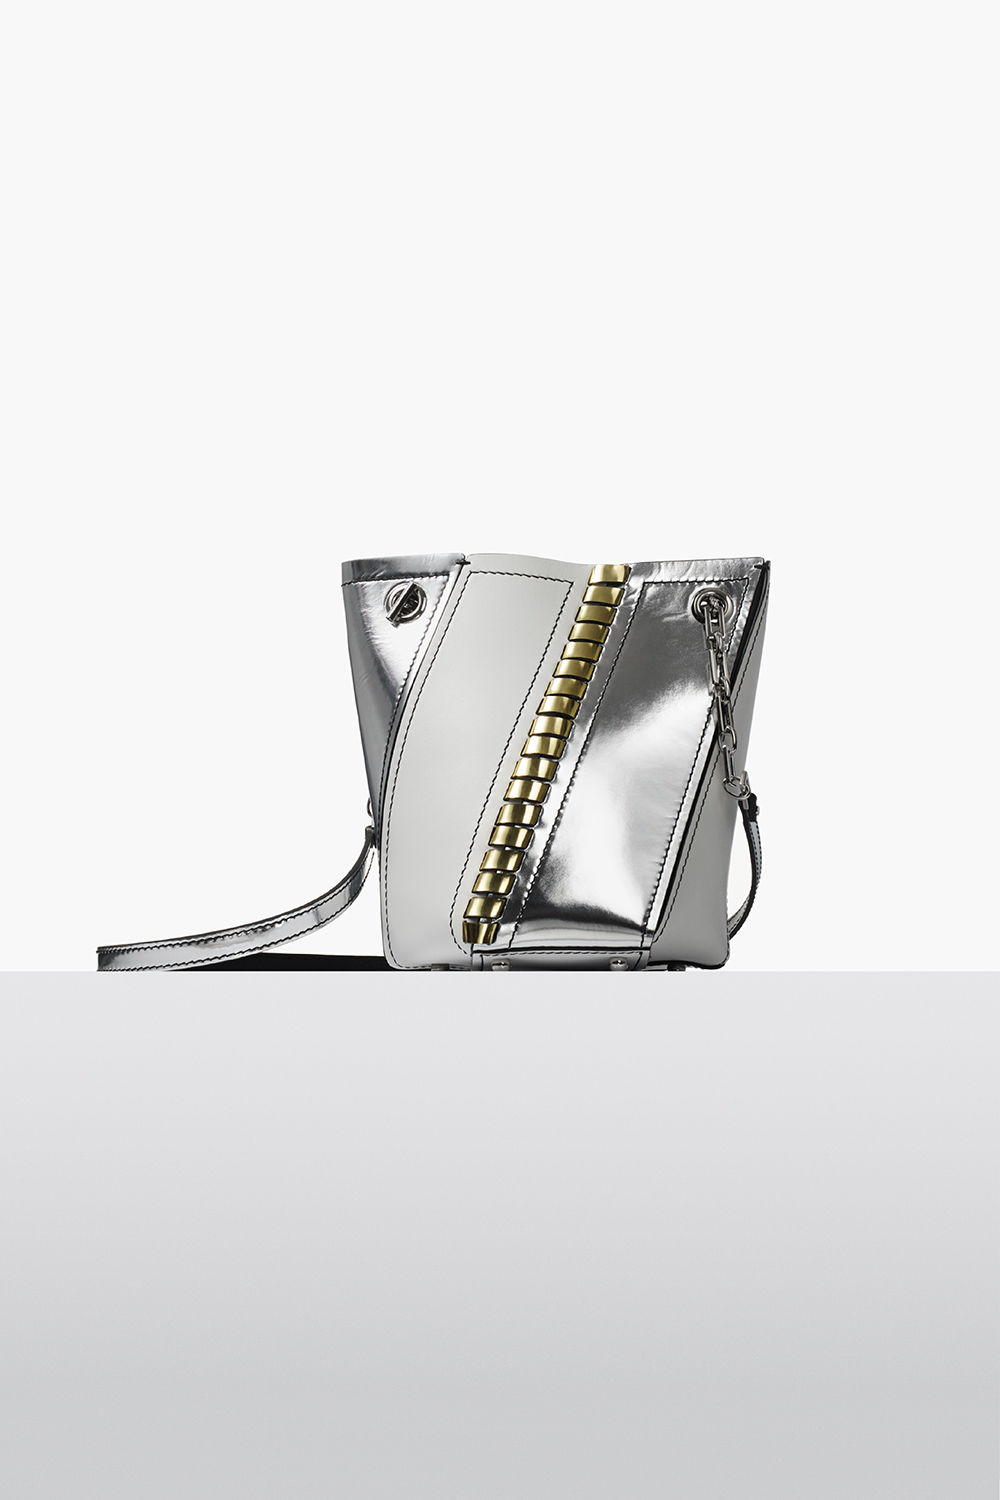 proenza schouler fall 2017 optic white smooth leather and metallic leather mini hex bucket bag